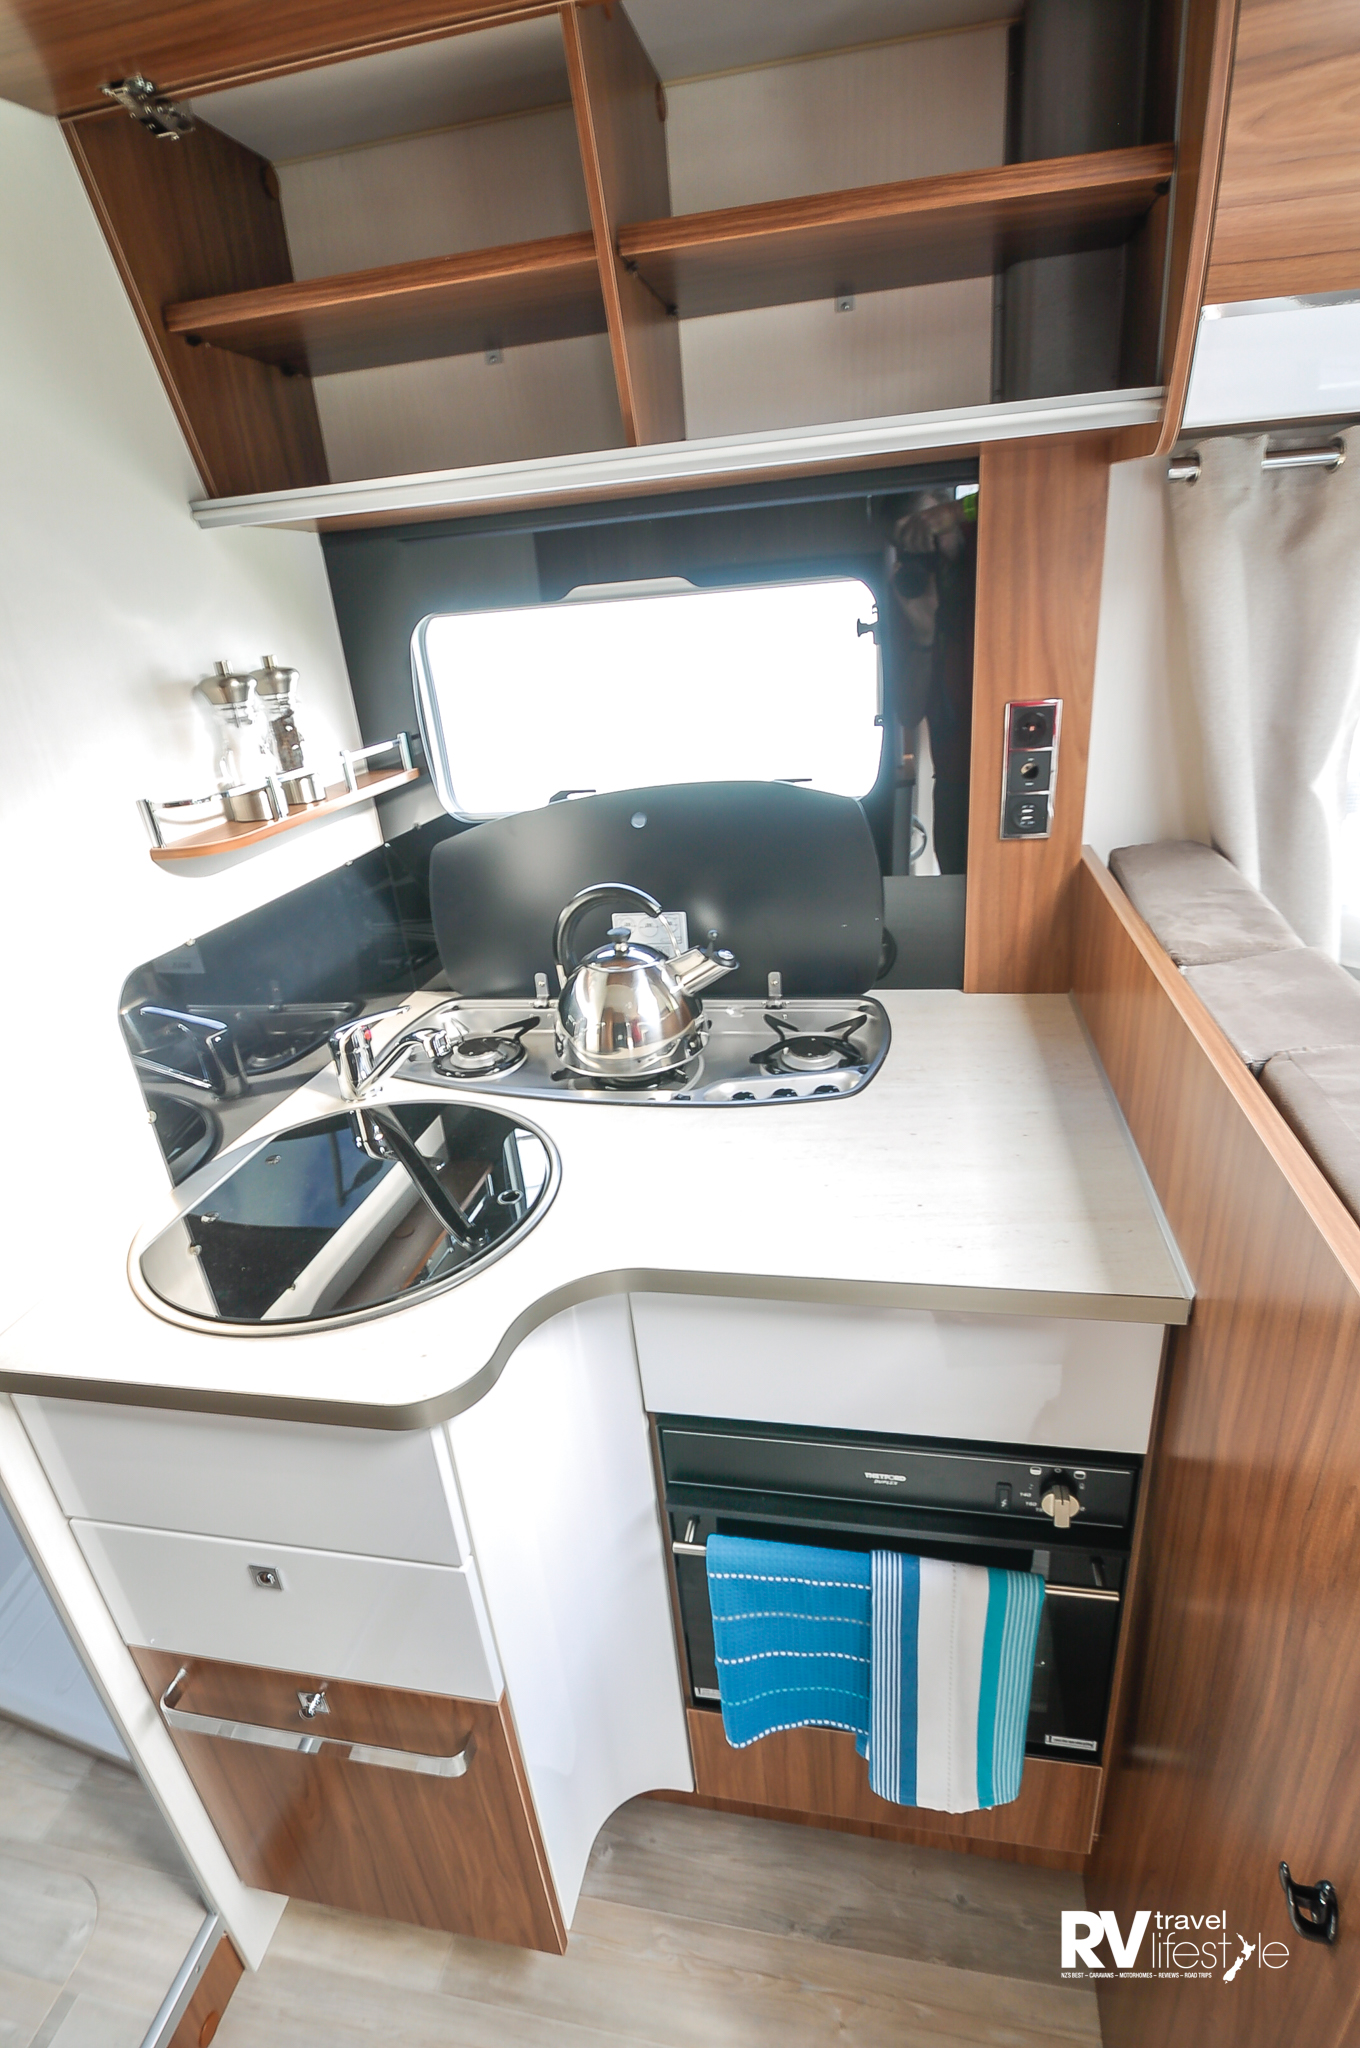 The kitchen has storage cupboards overhead, a utility drawer and a larger storage drawer with a fitted bin. The sink and hob units have glass covers to increase the workspace - not a large space but this is bigger than other European models